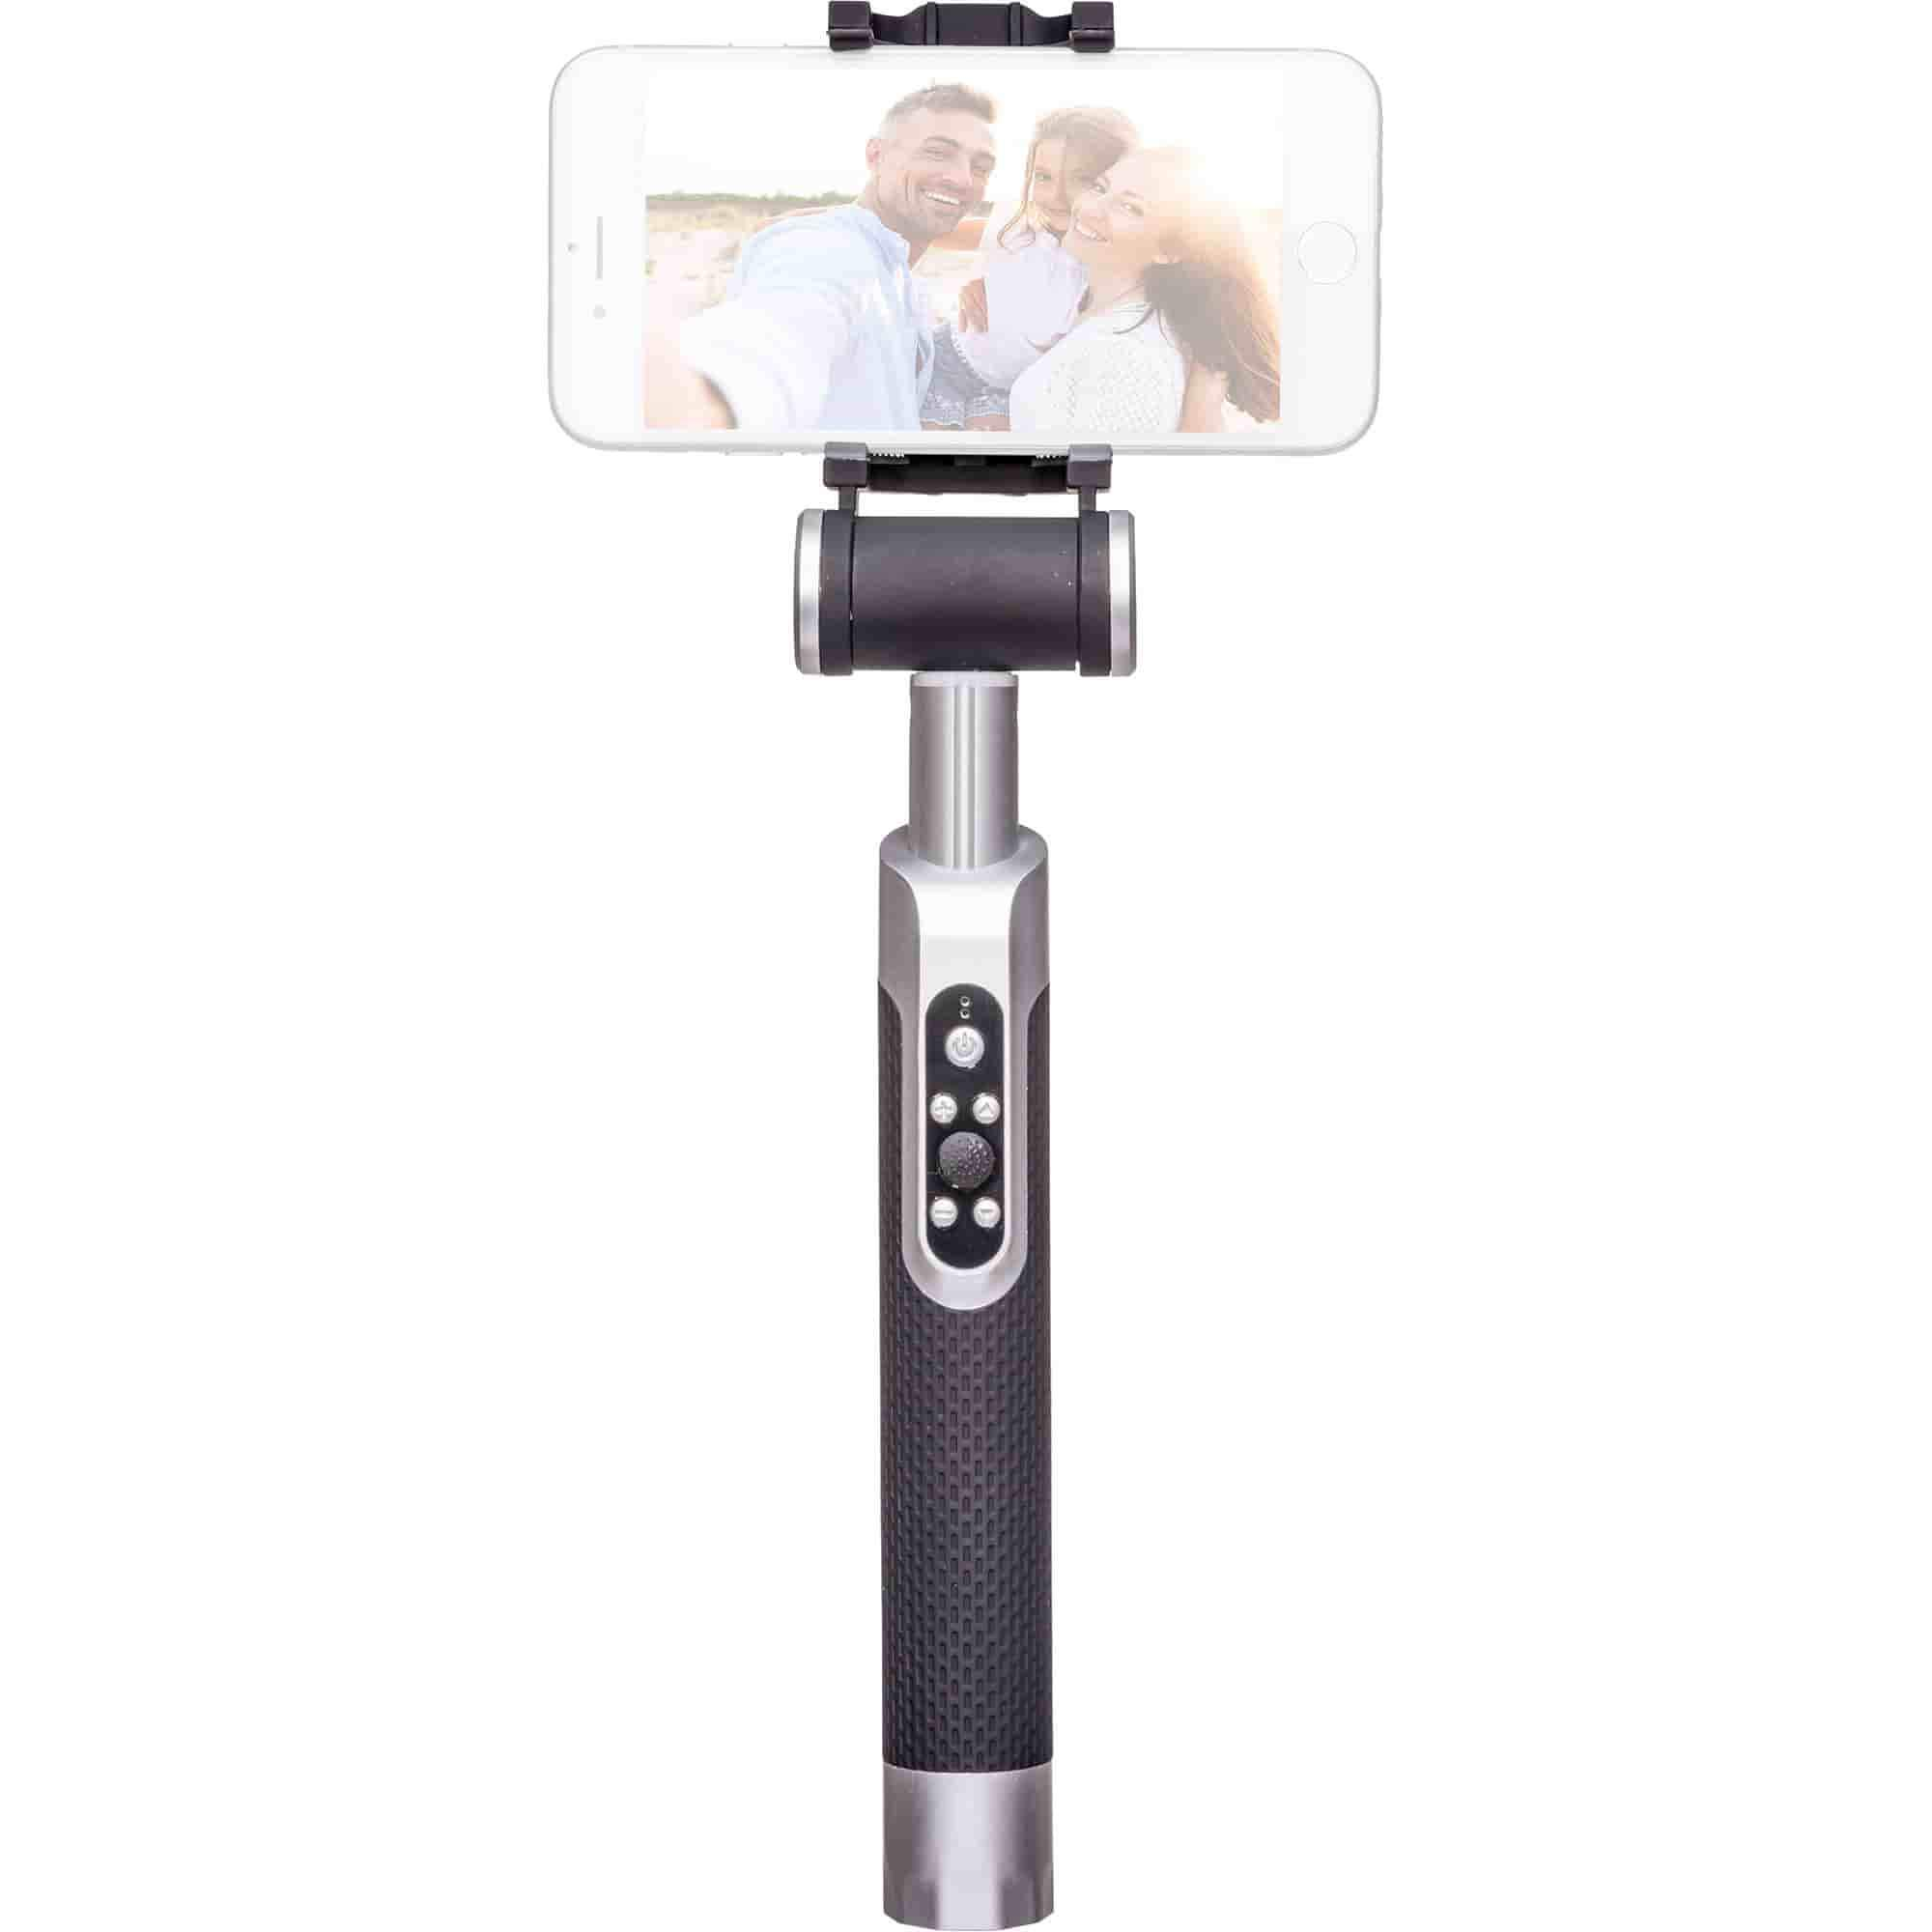 Pictar Smart Selfie Stick With Control Panel